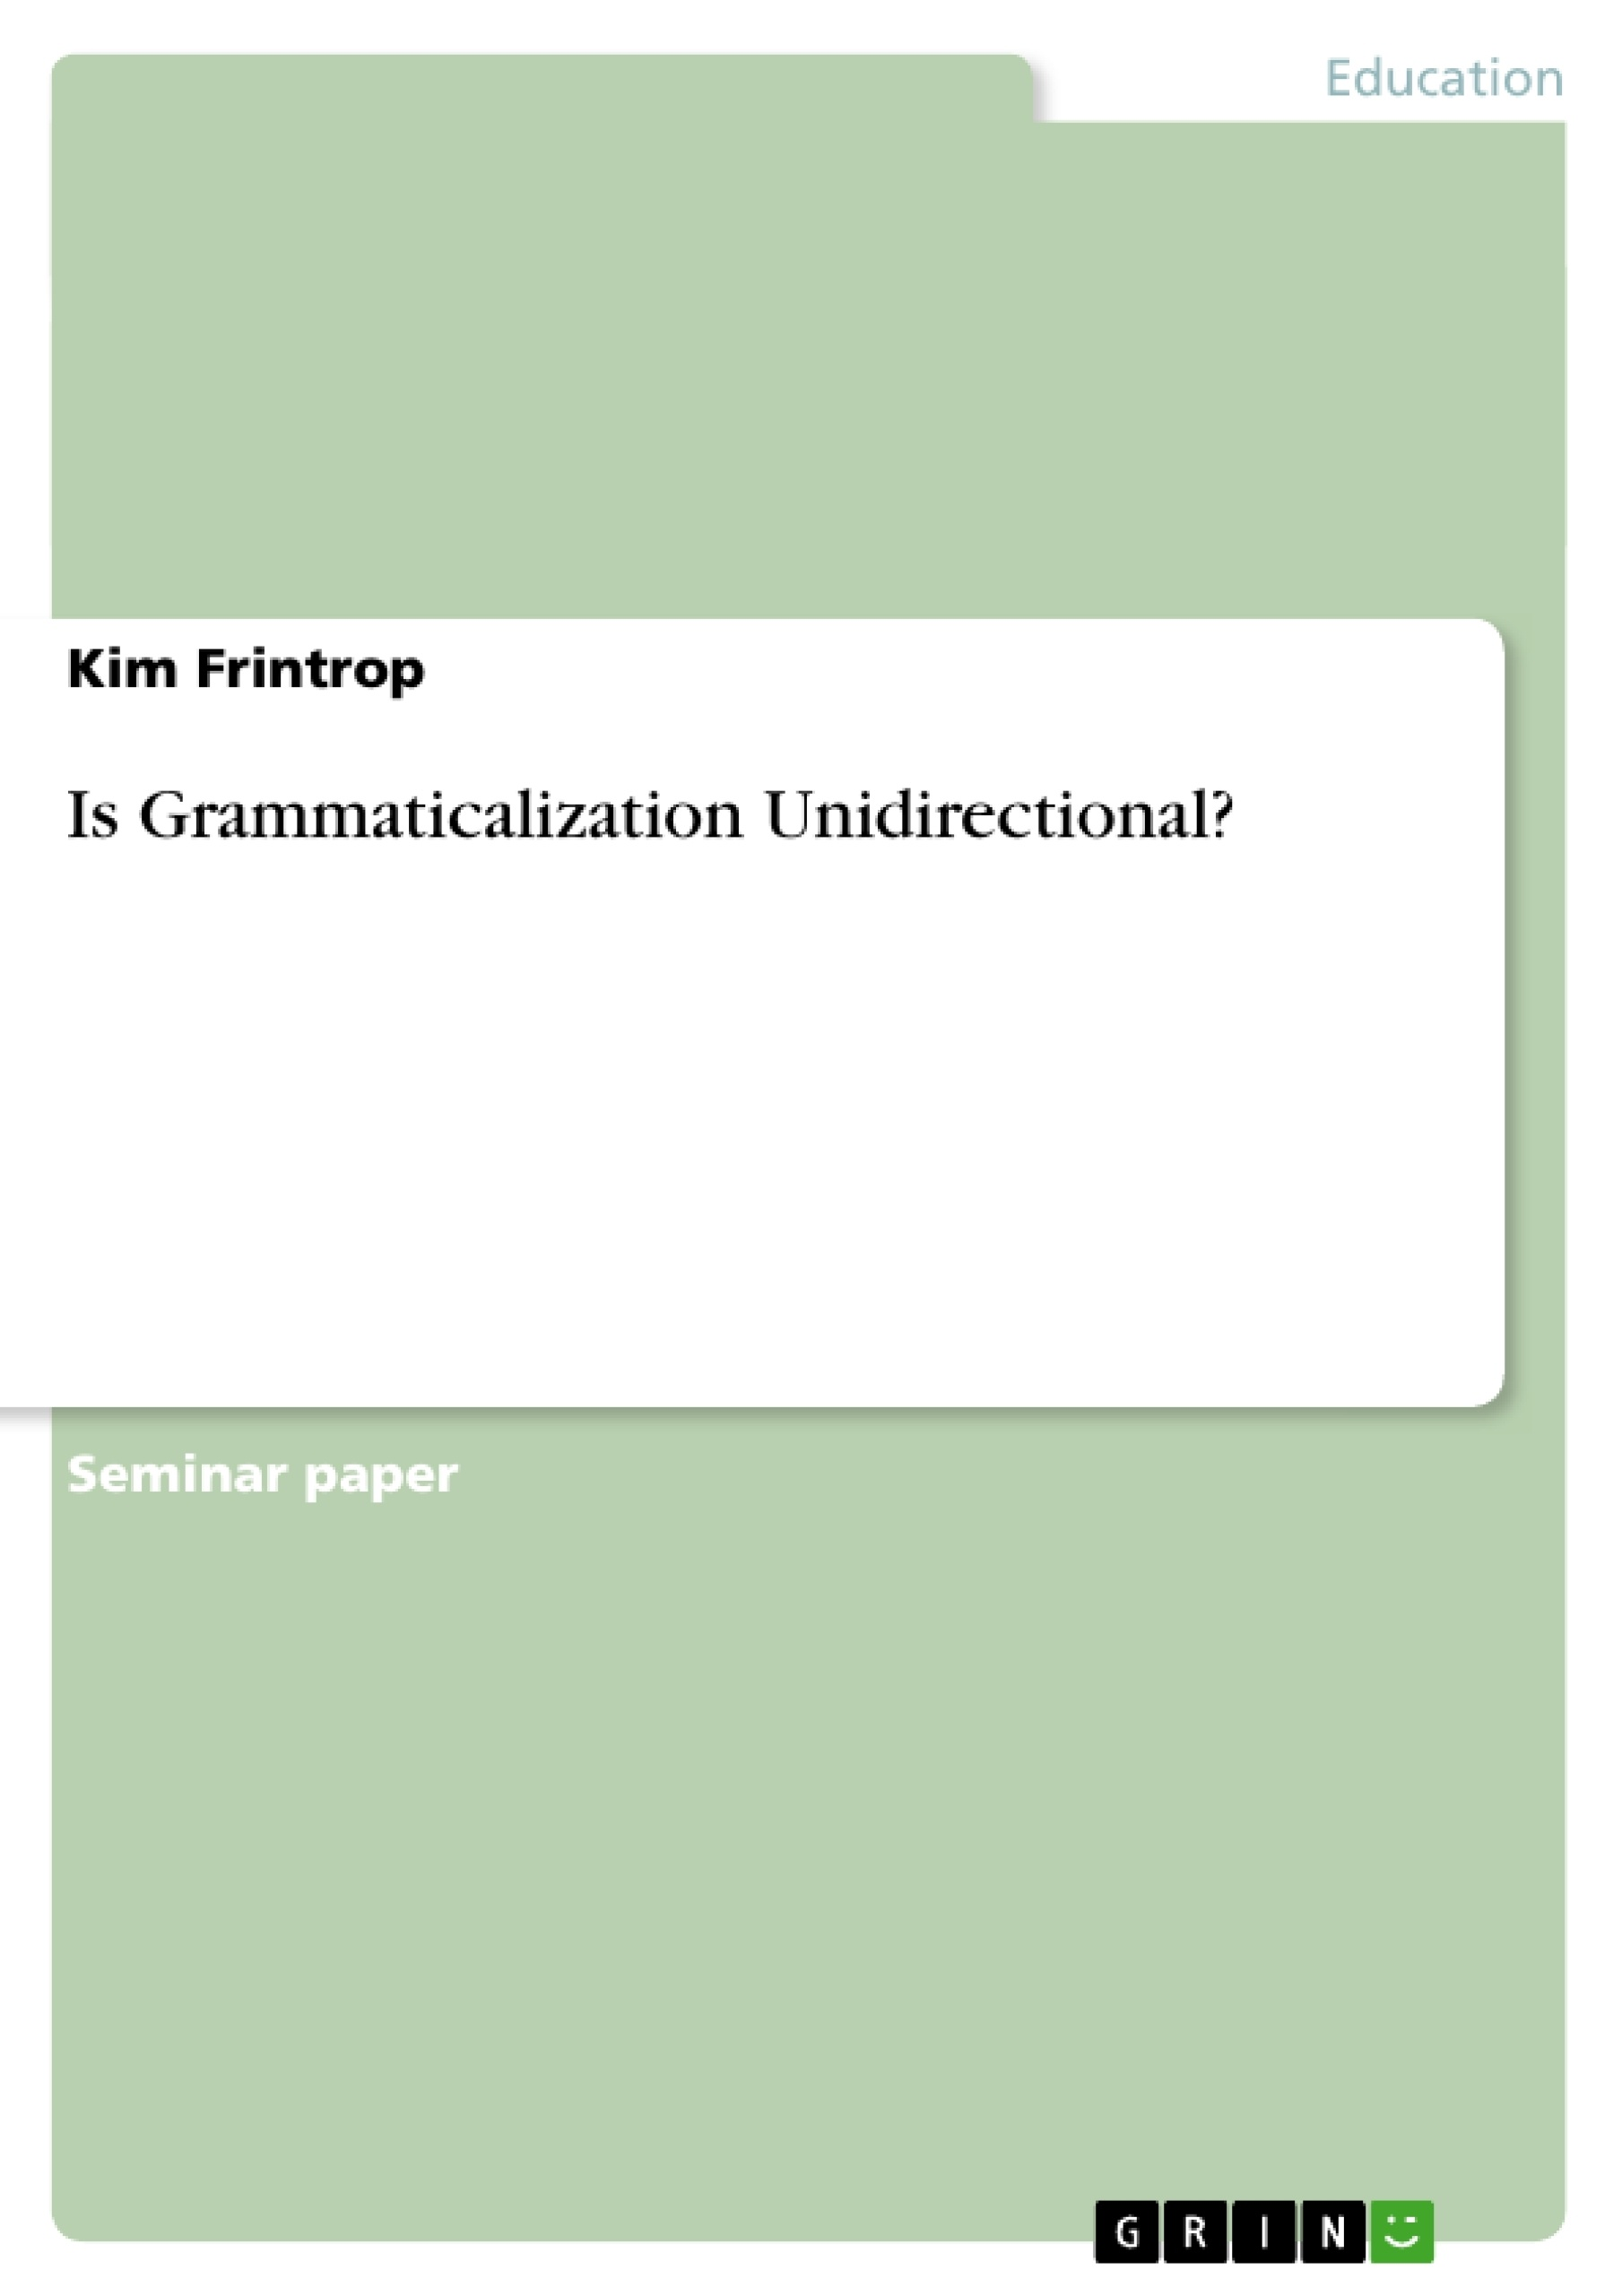 Title: Is Grammaticalization Unidirectional?